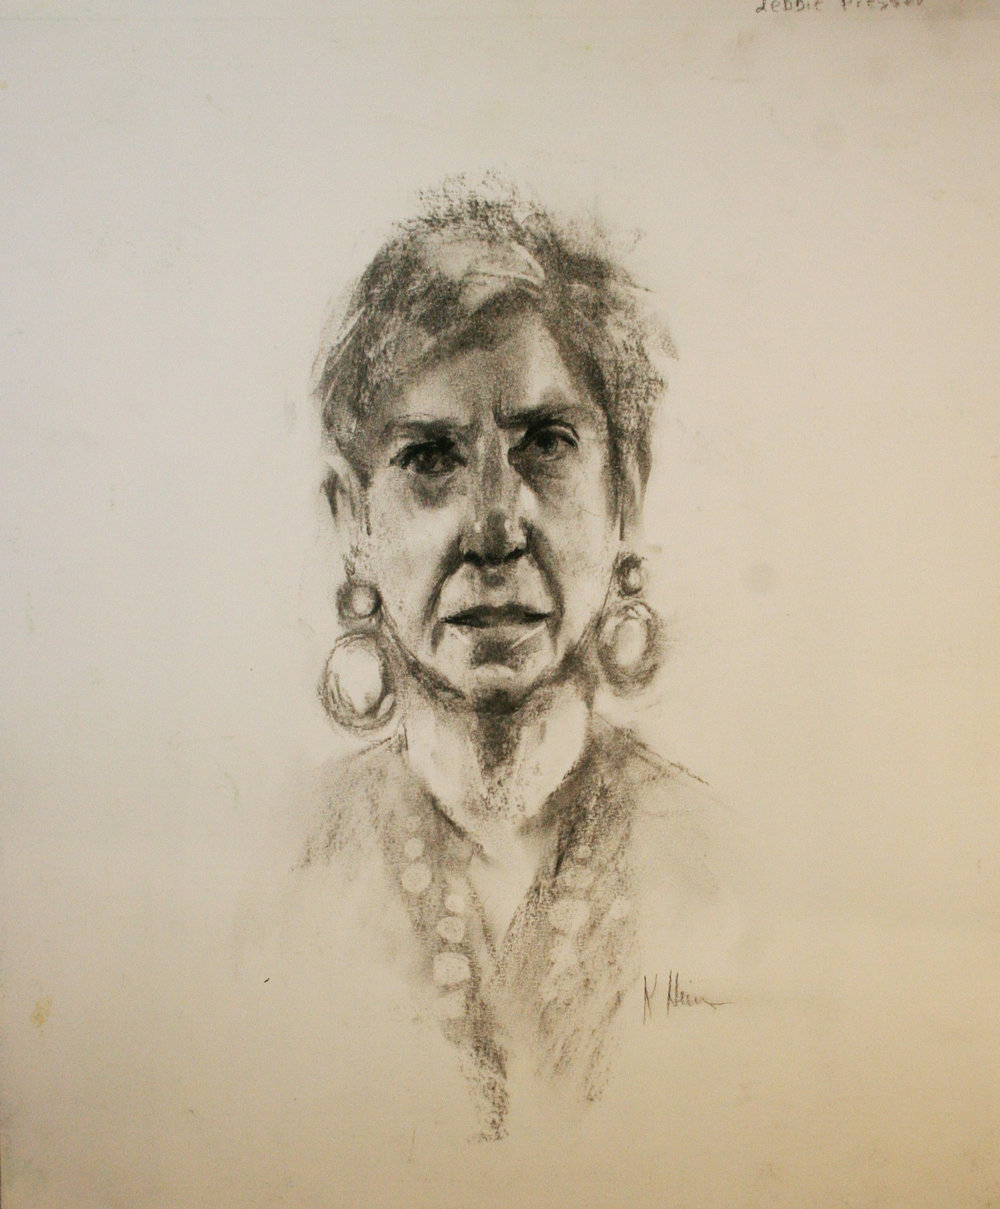 Kathryn Heim did this charcoal sketch.